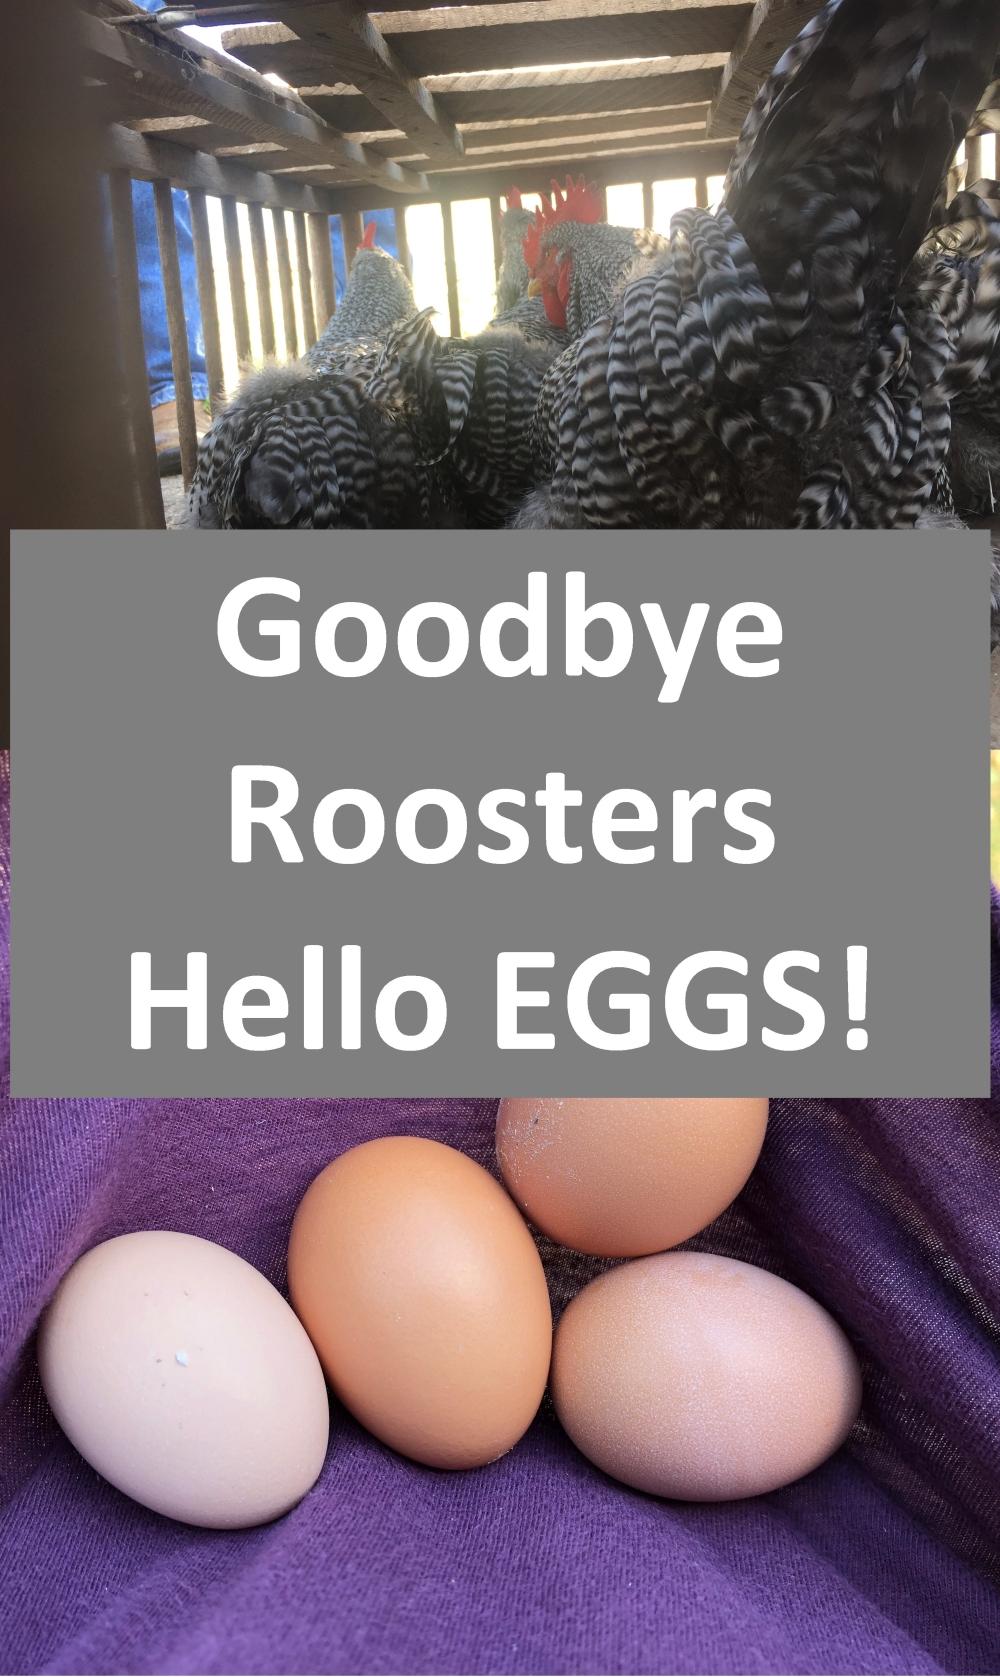 Goodbye Roosters Hellow Eggs